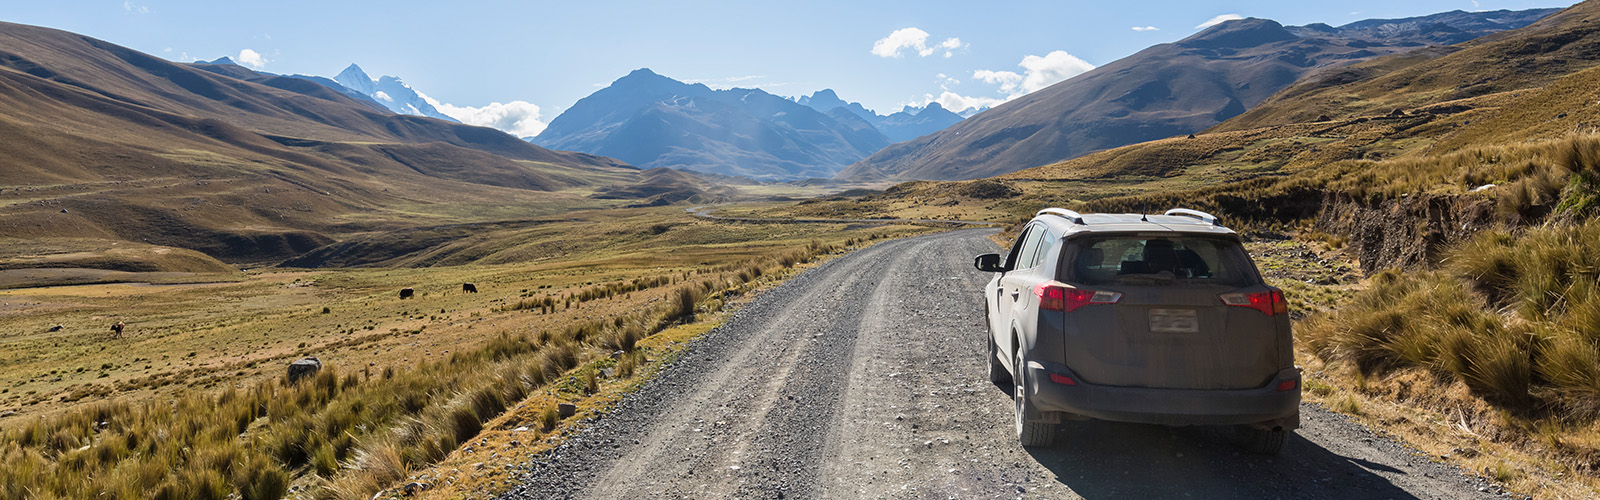 car on gravel mountain road